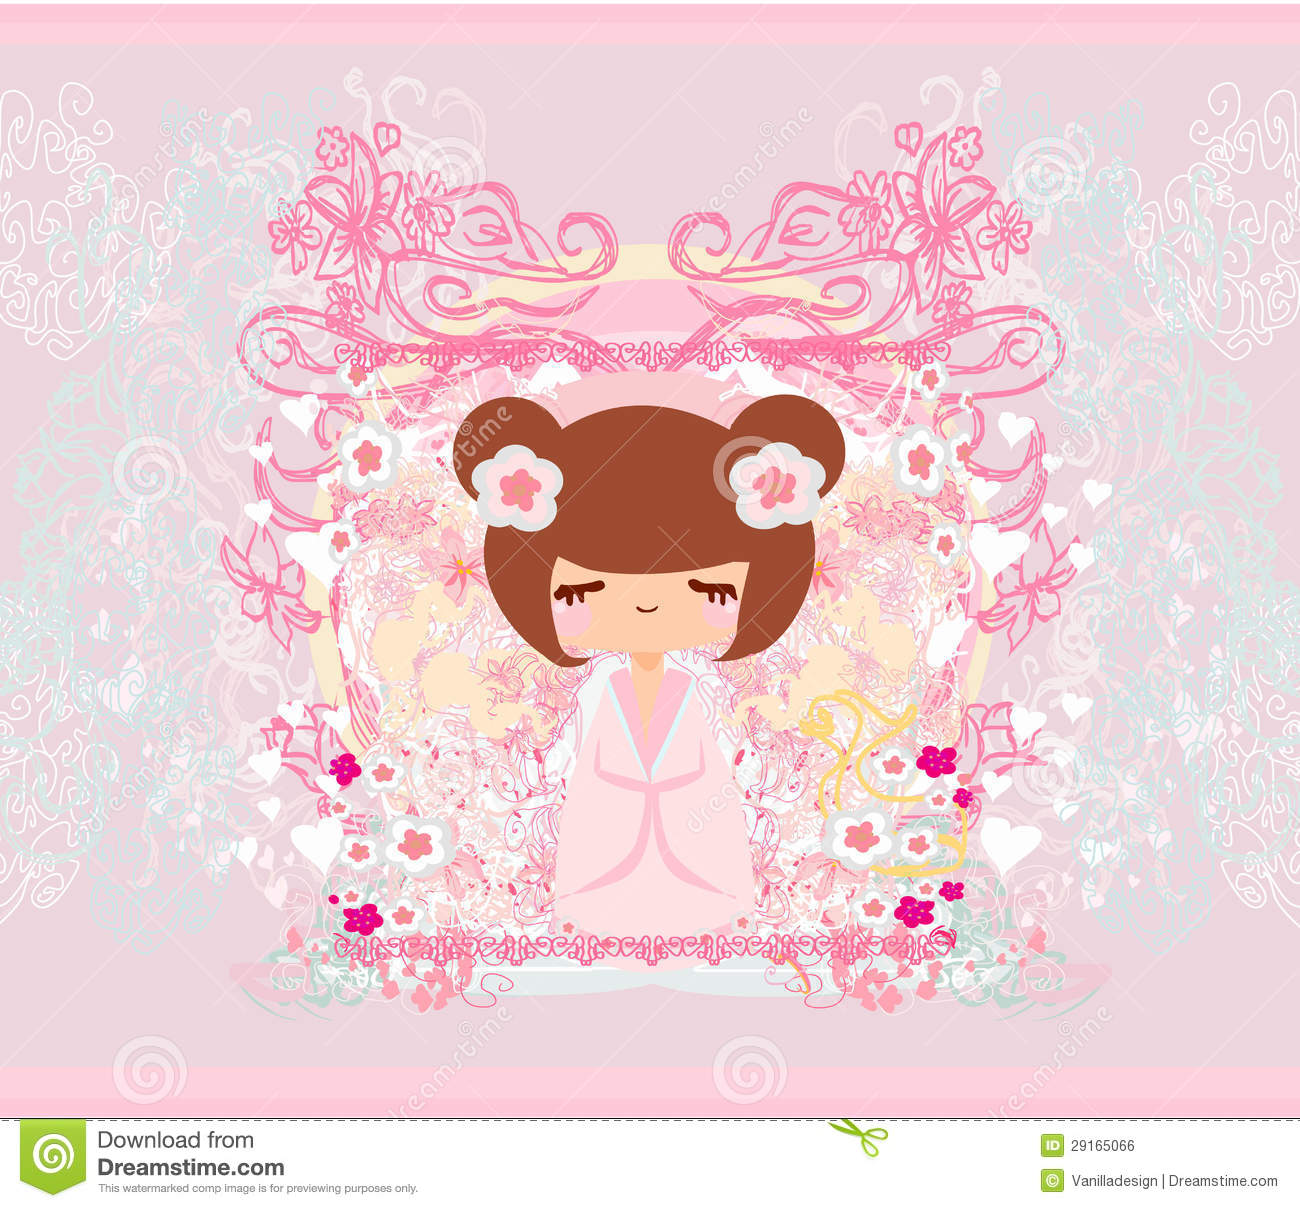 Alien Wallpaper Cute Kokeshi Doll On The Pink Background Royalty Free Stock